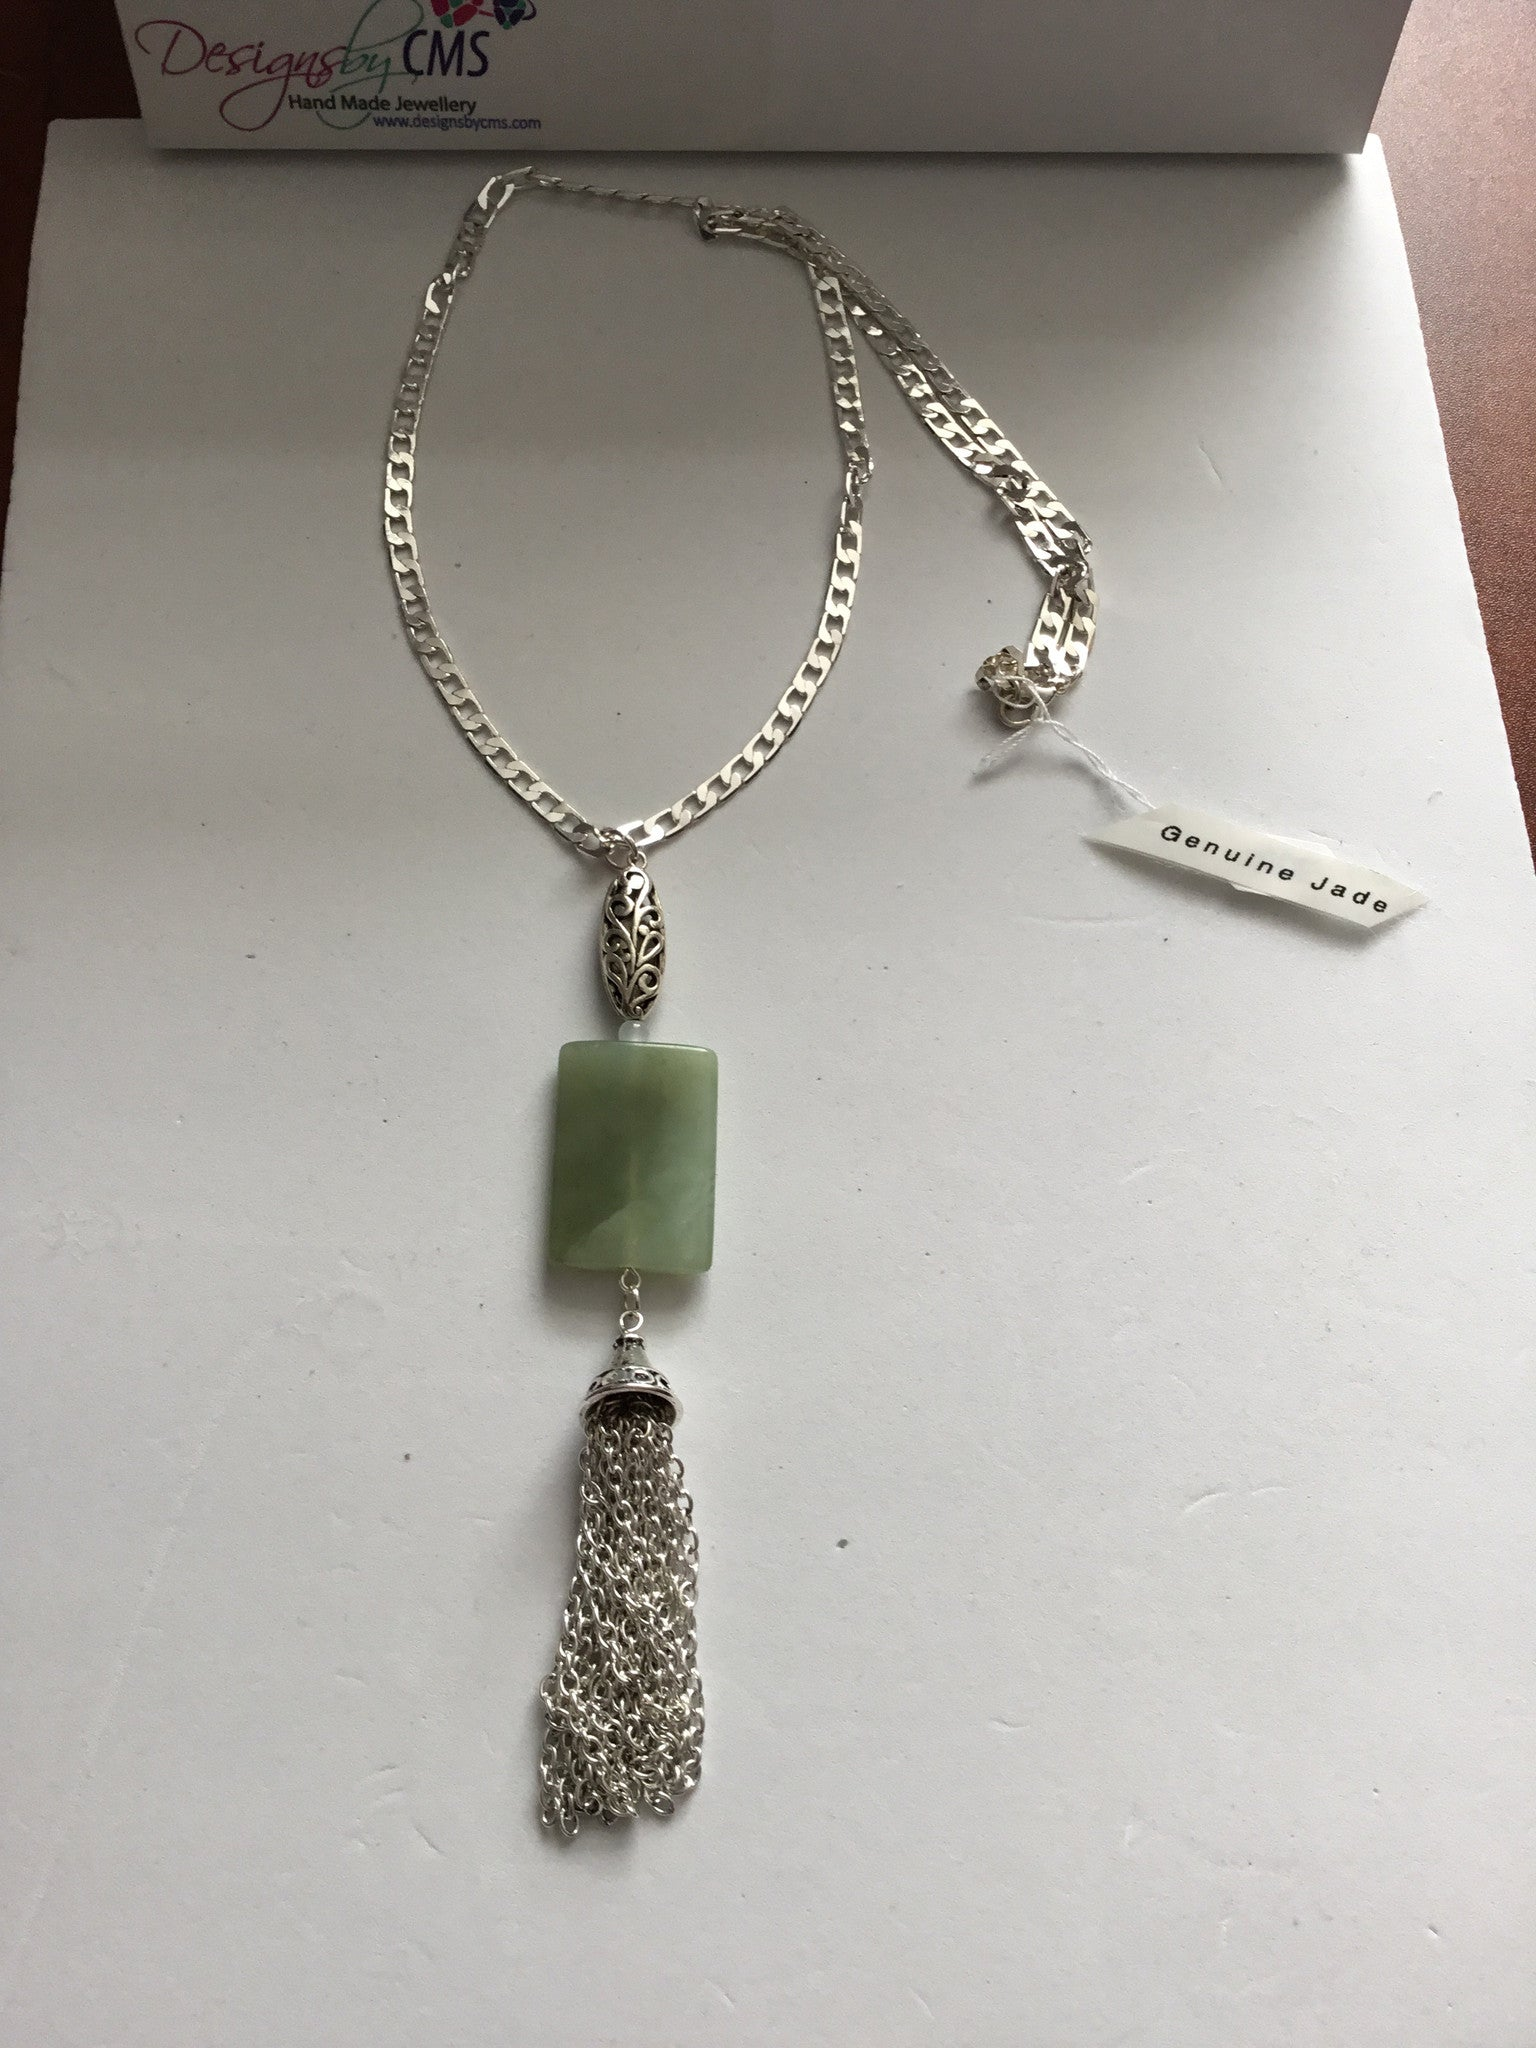 SOLD - Genuine Jade Pendant Necklace with Tassel